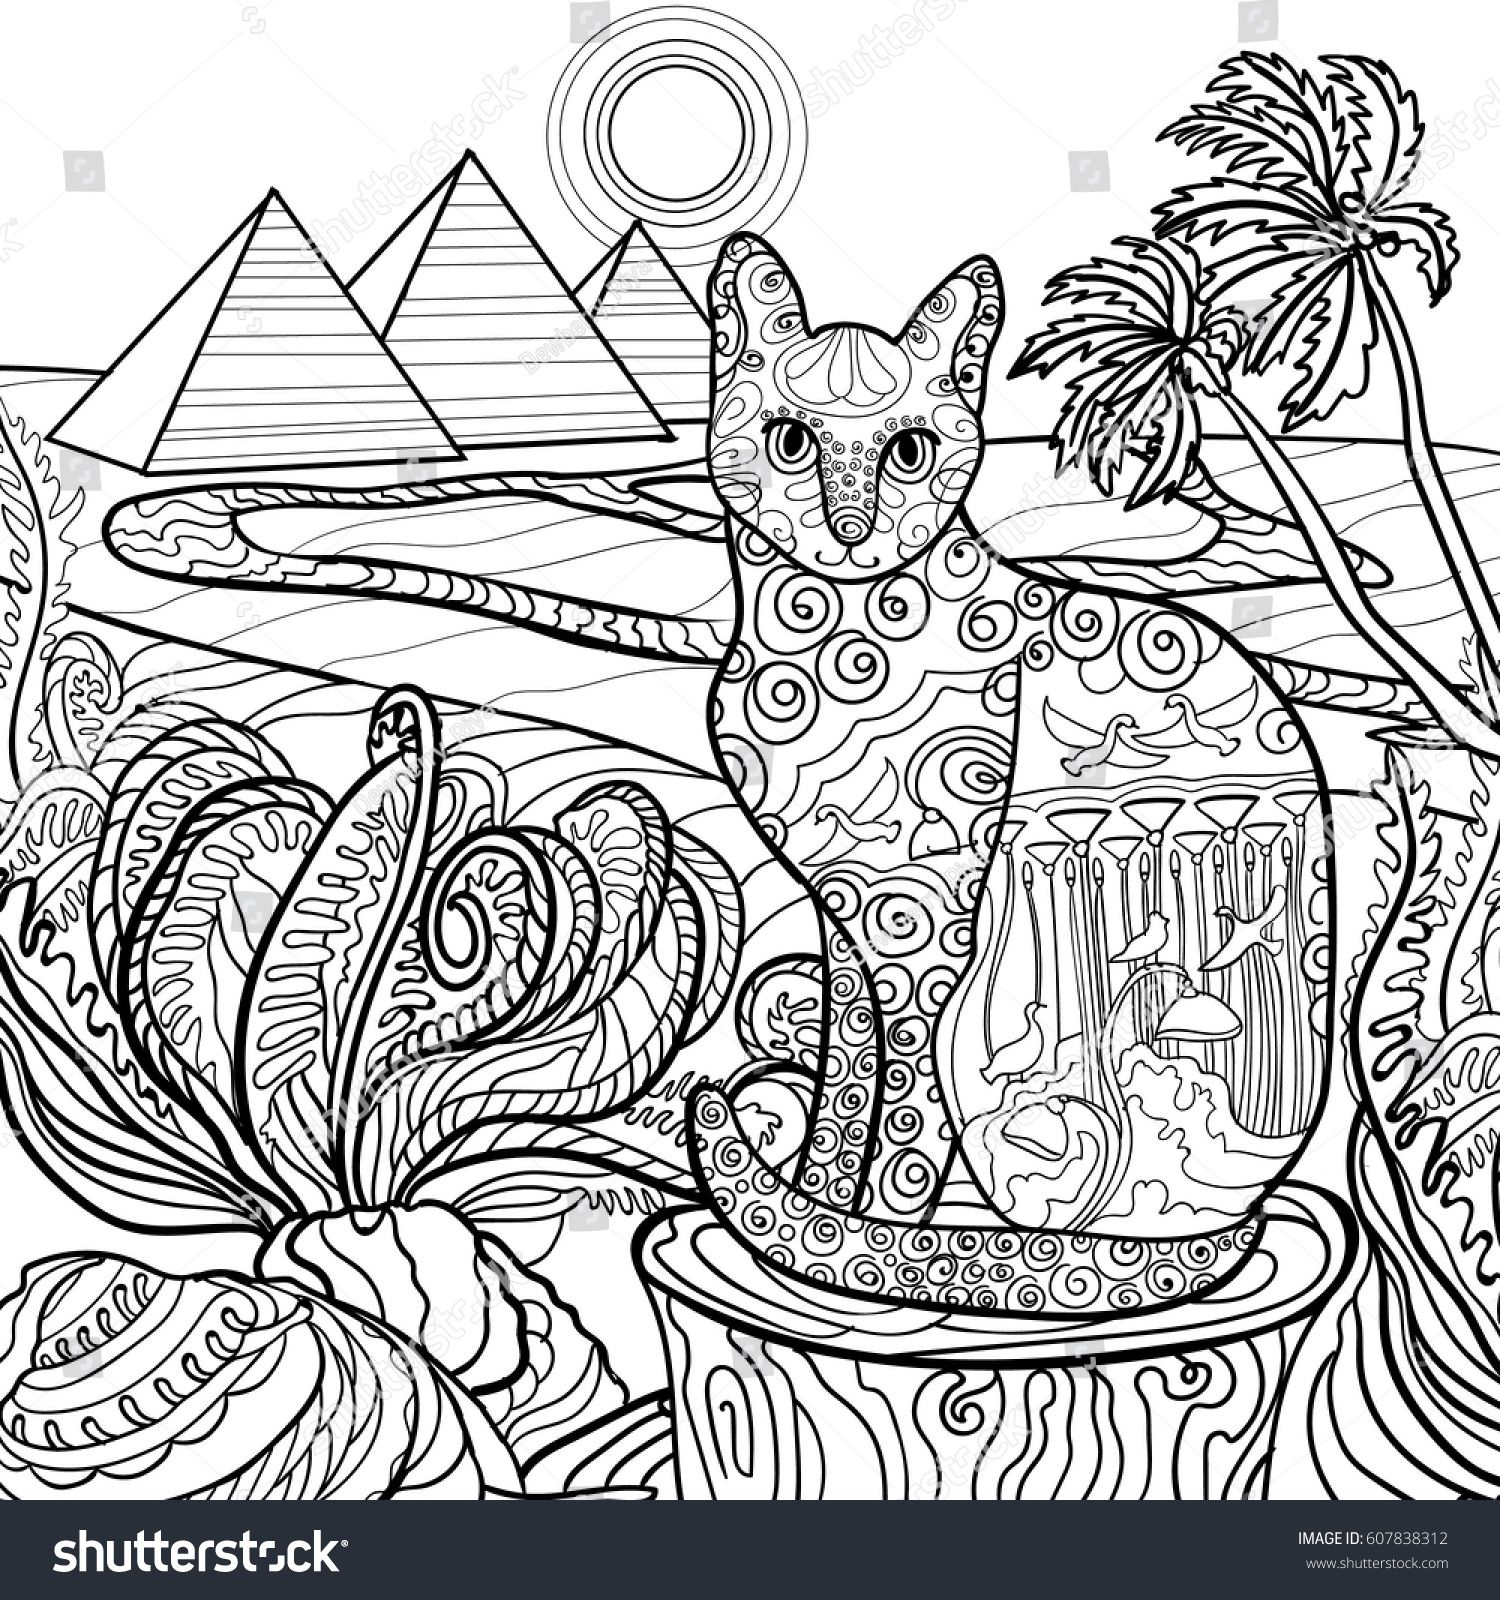 Outline. Cat coloring page design in Egypt style. Vintage hand drawn ...